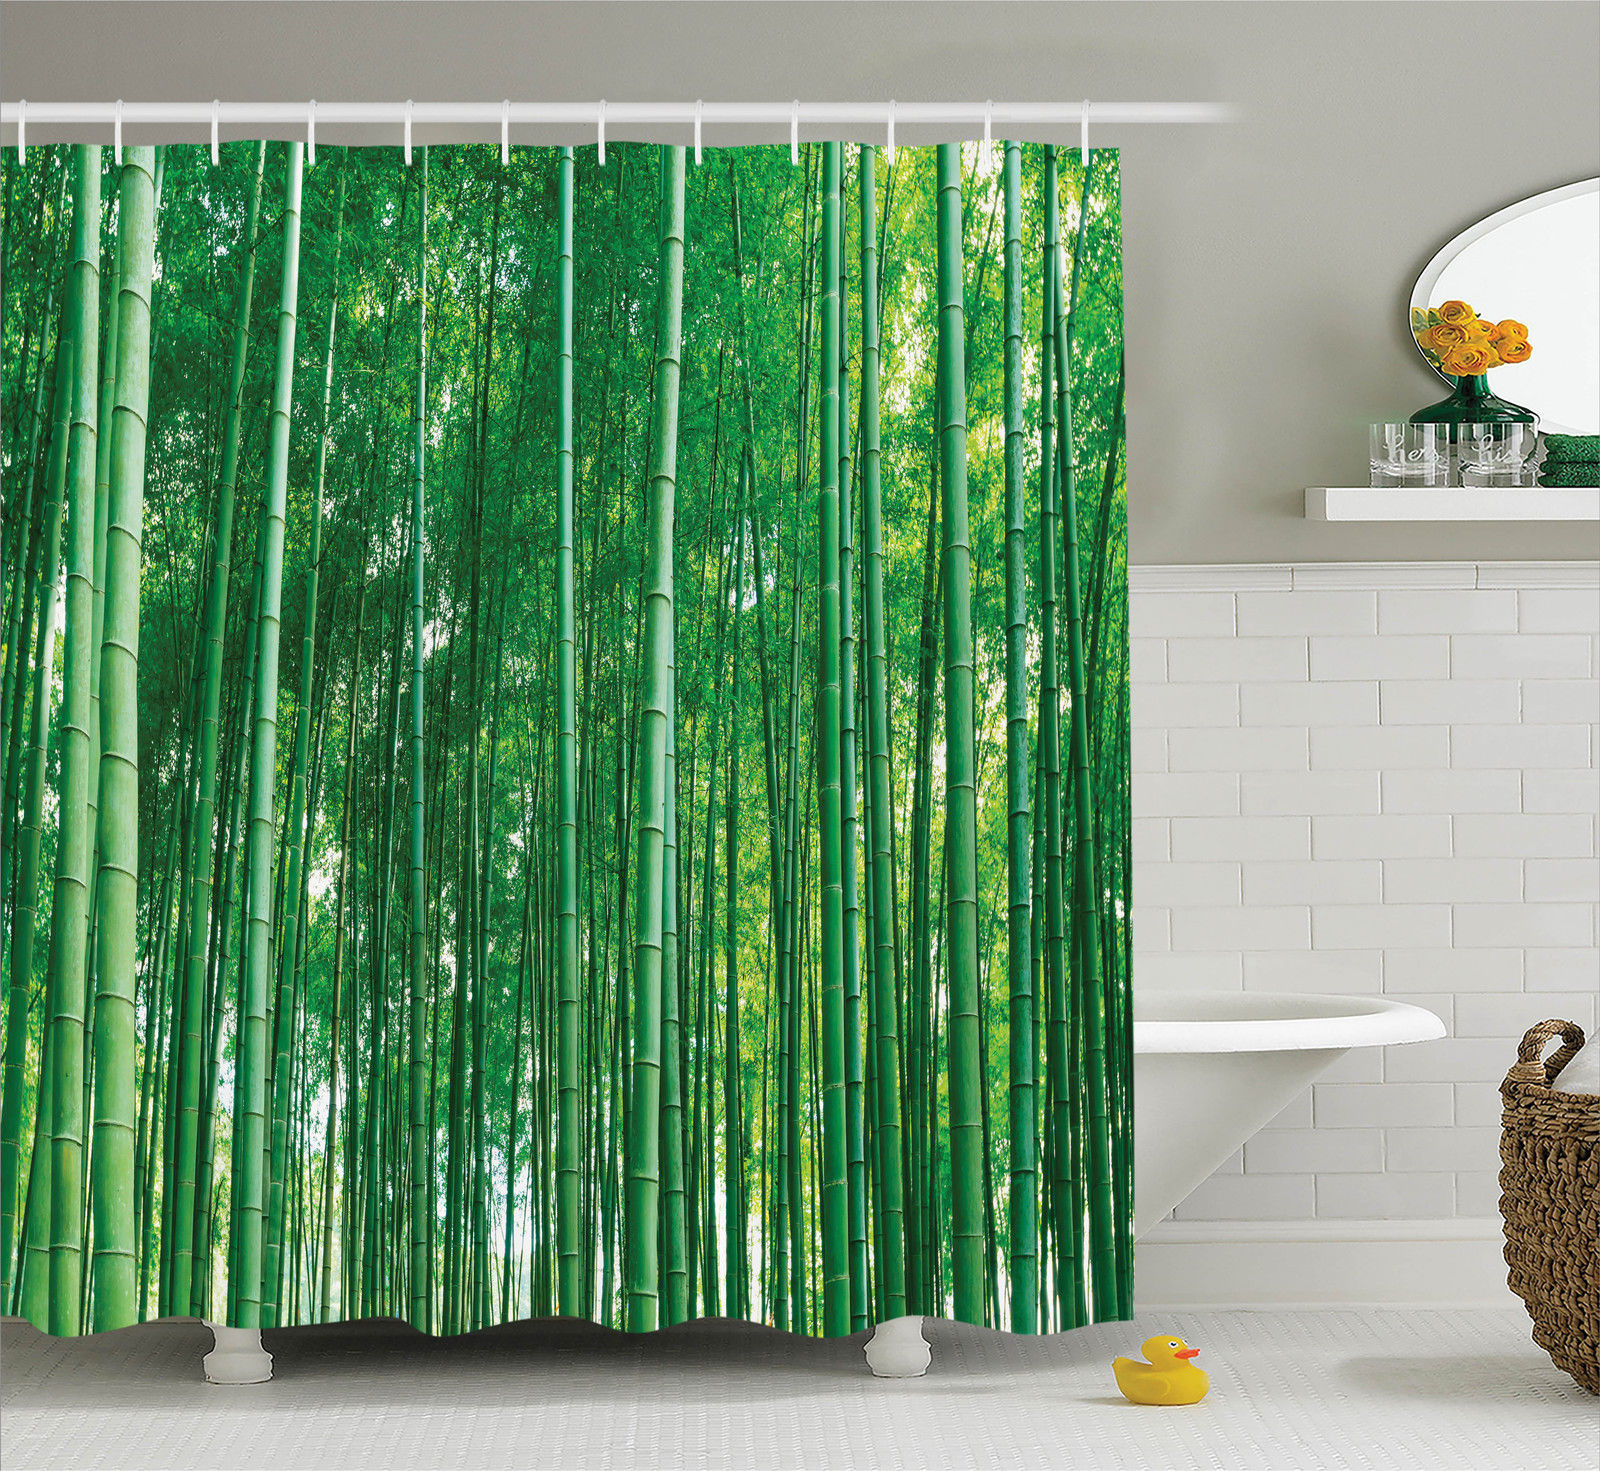 Bamboo House Decor Shower Curtain Set, Bamboo Forest With Fresh Vibrant Colors Tall Long Life Growth Deepness Symbol Zen Photo, Bathroom Accessories, 69W X 70L Inches, By Ambesonne